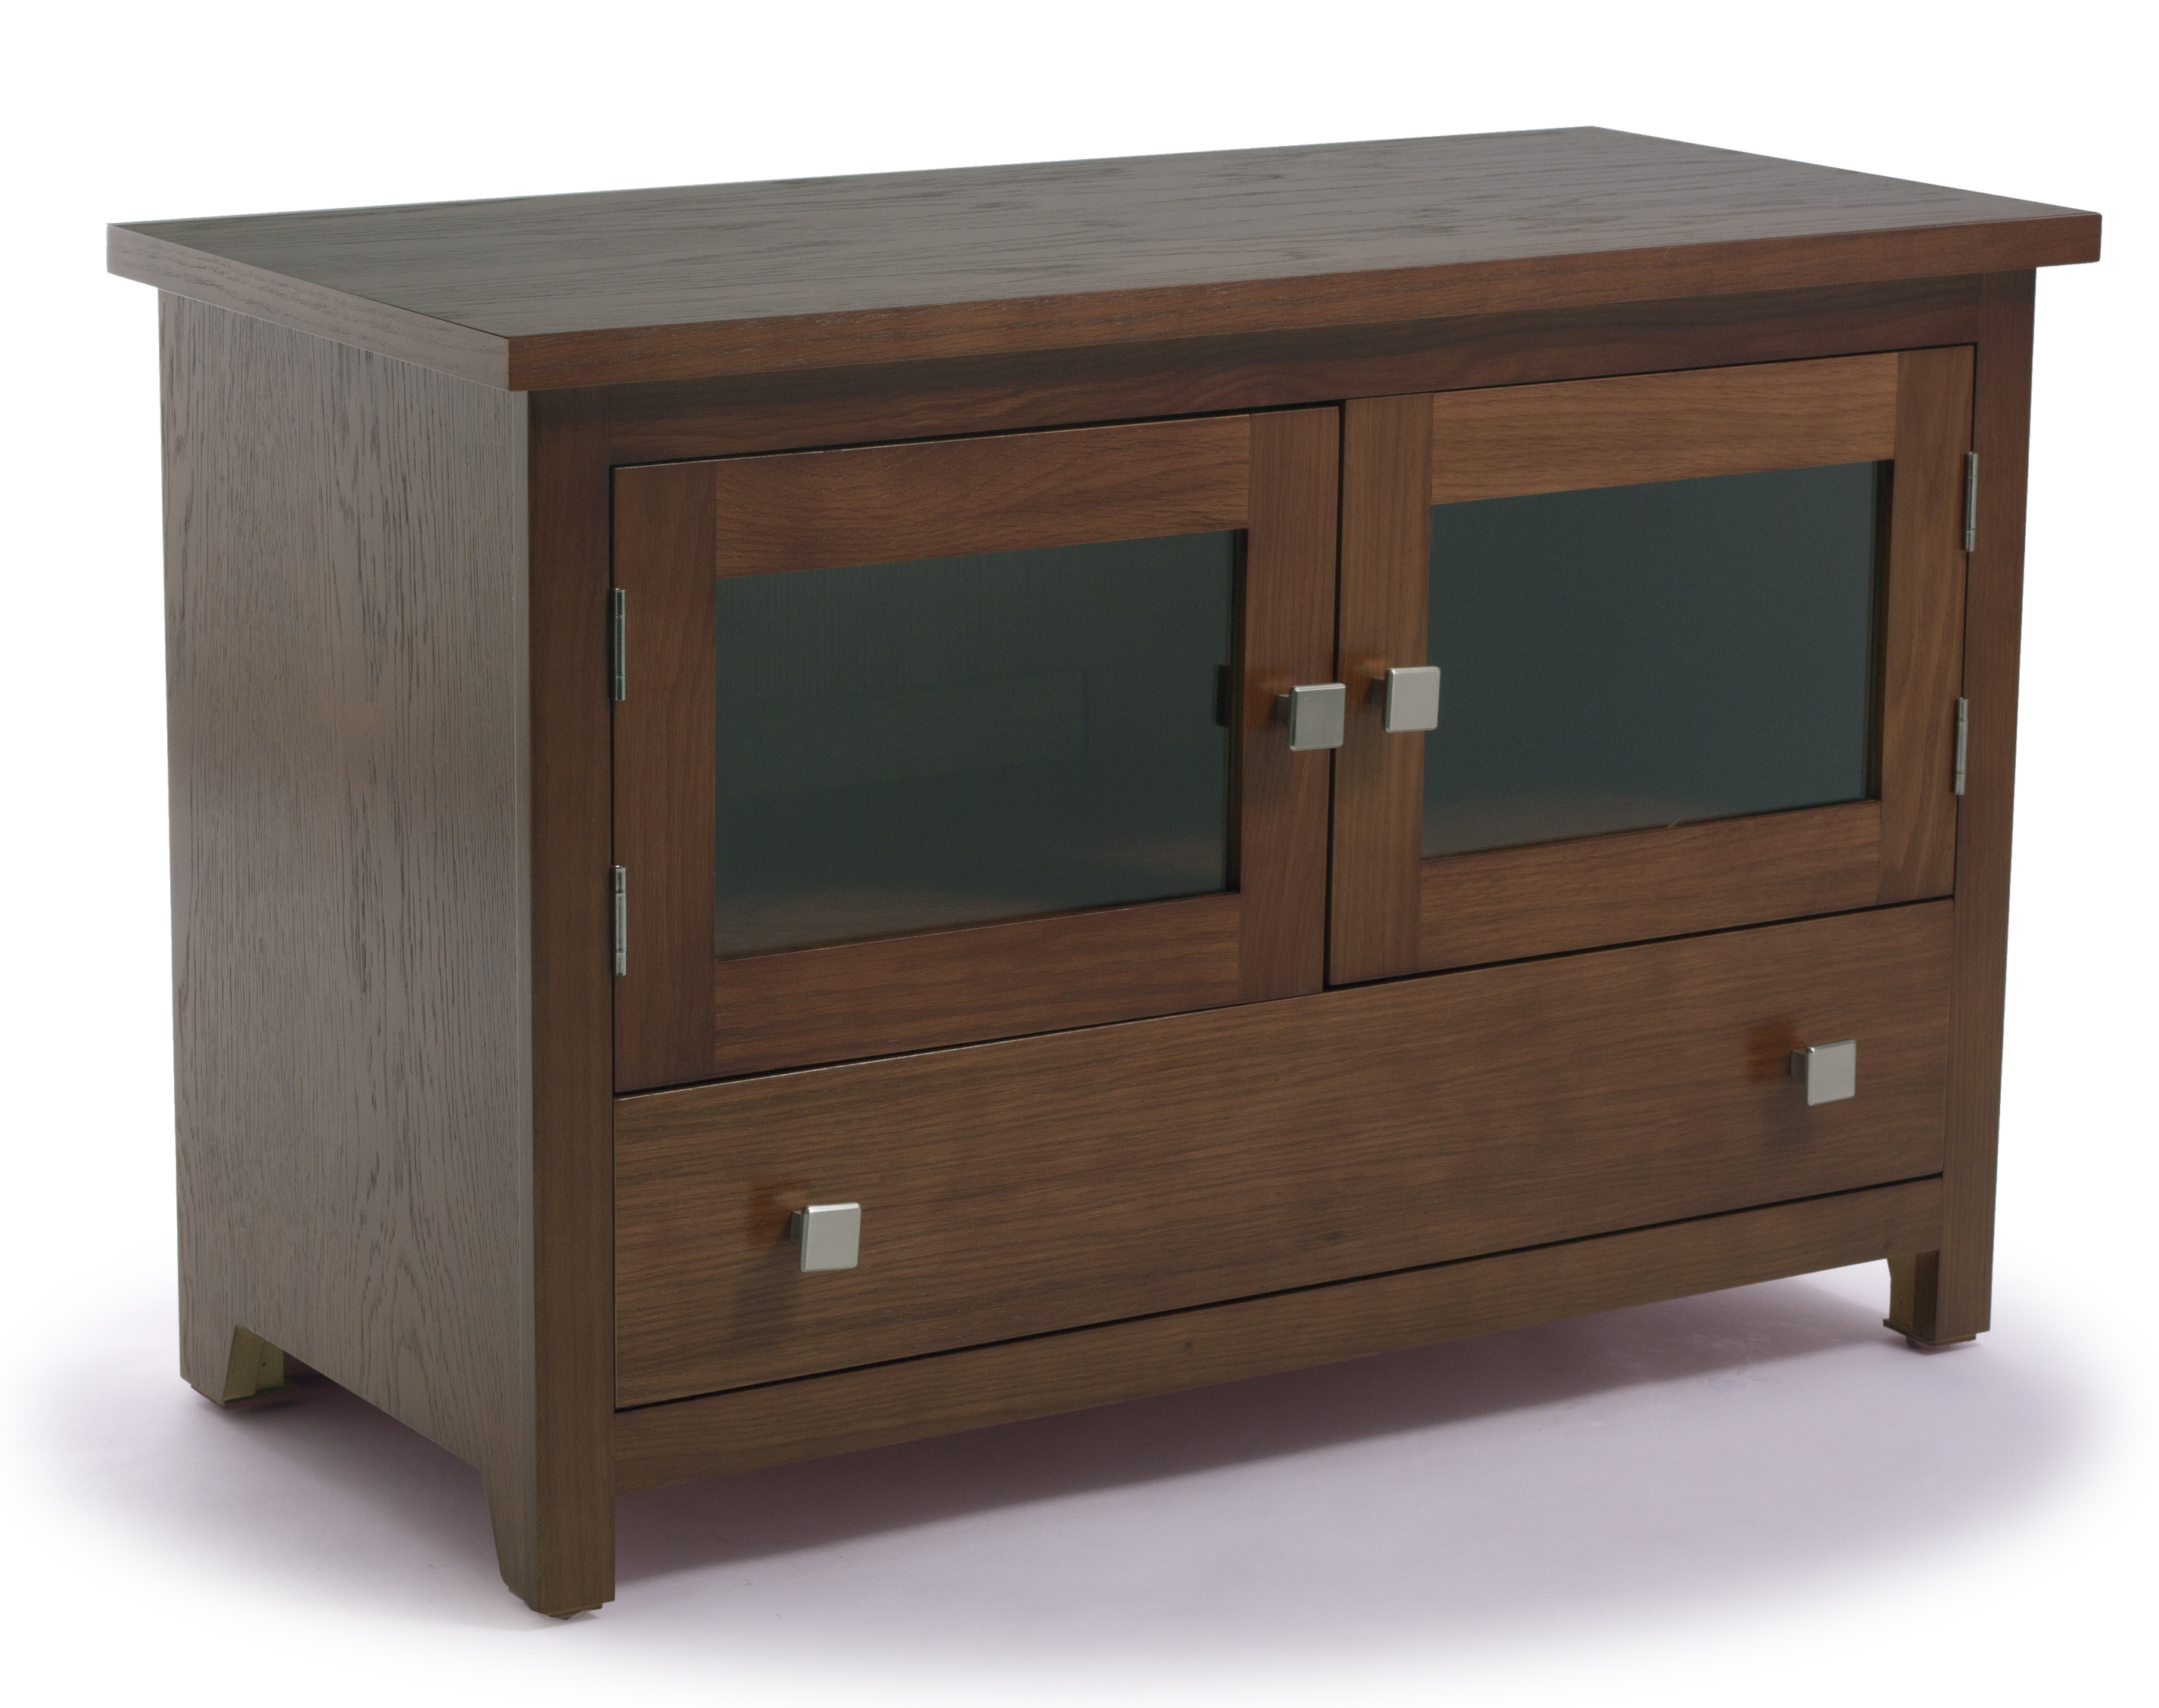 Modern classic tv video unit cfs contract furniture for Modern classic furniture